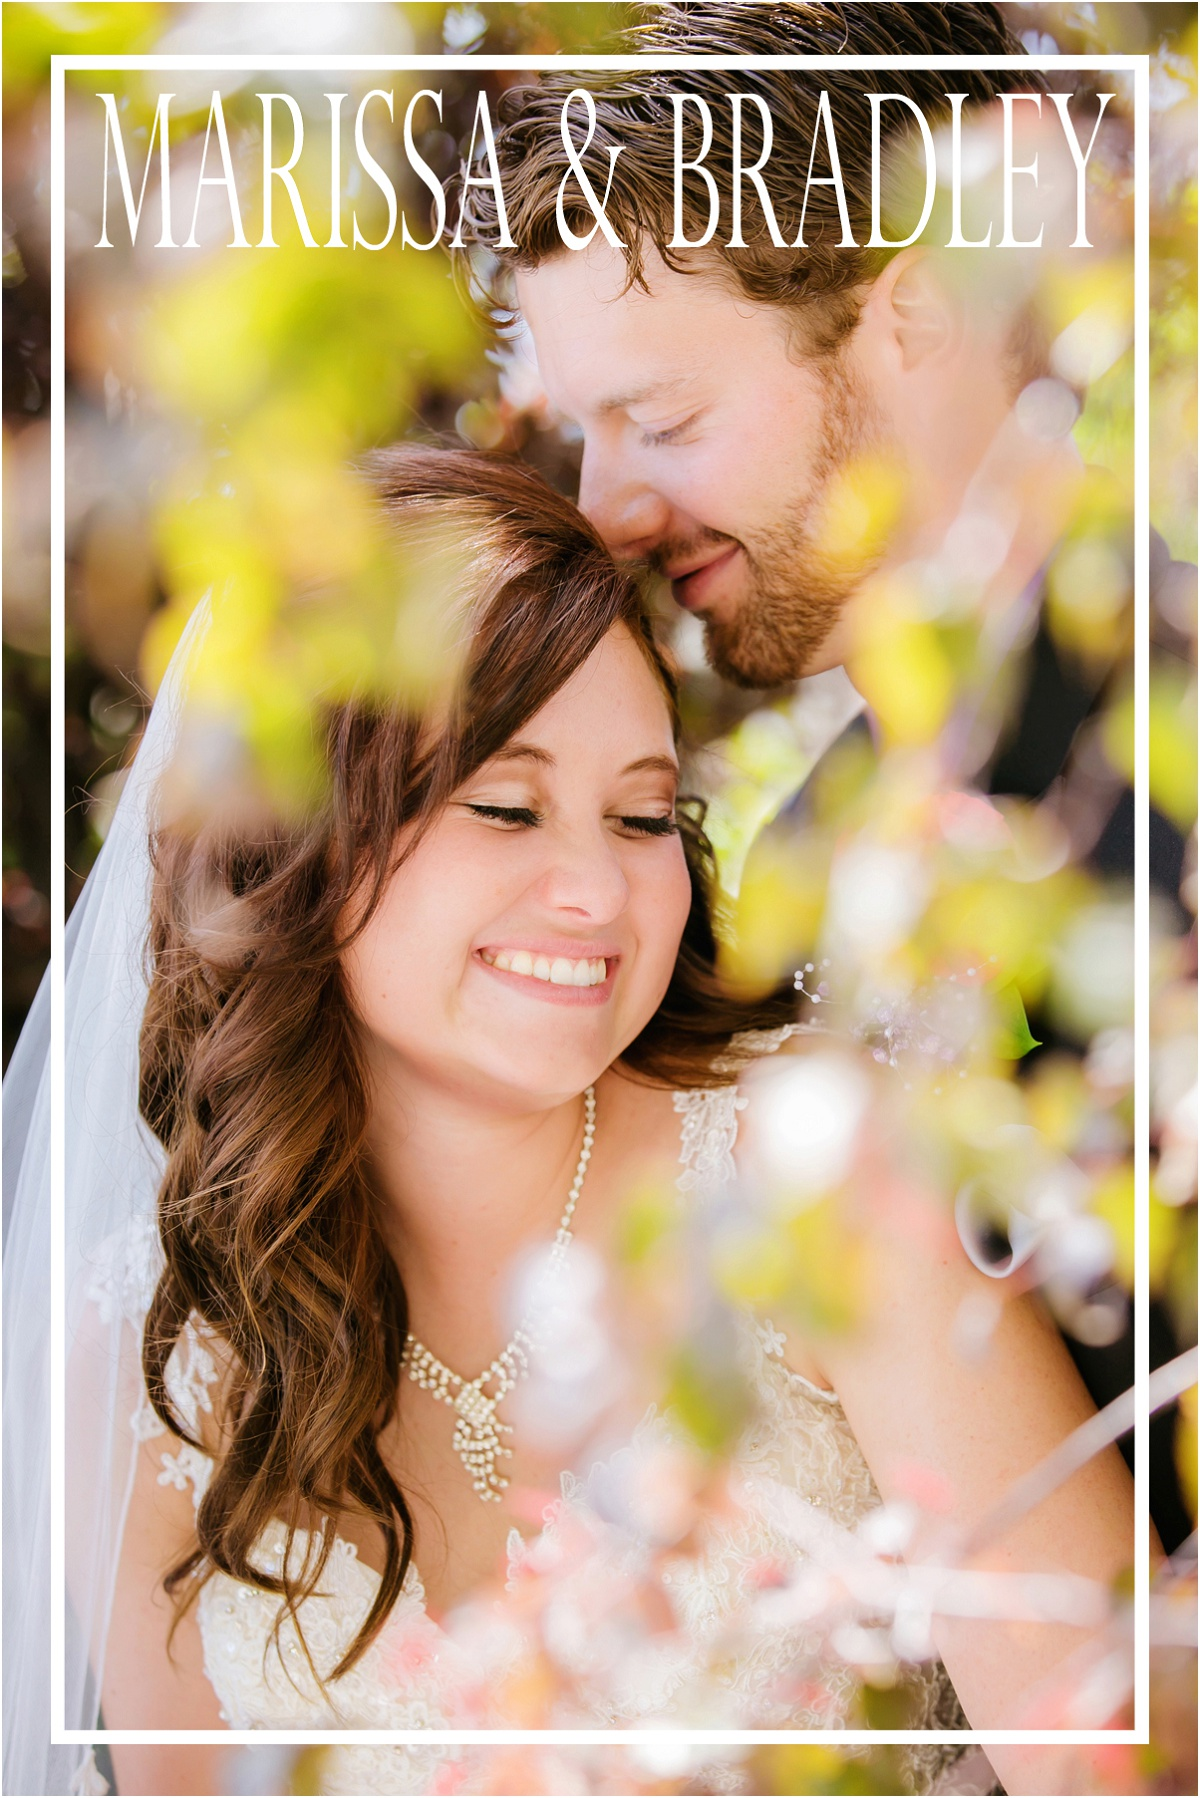 Terra Cooper Photography Weddings Brides 2015_5396.jpg